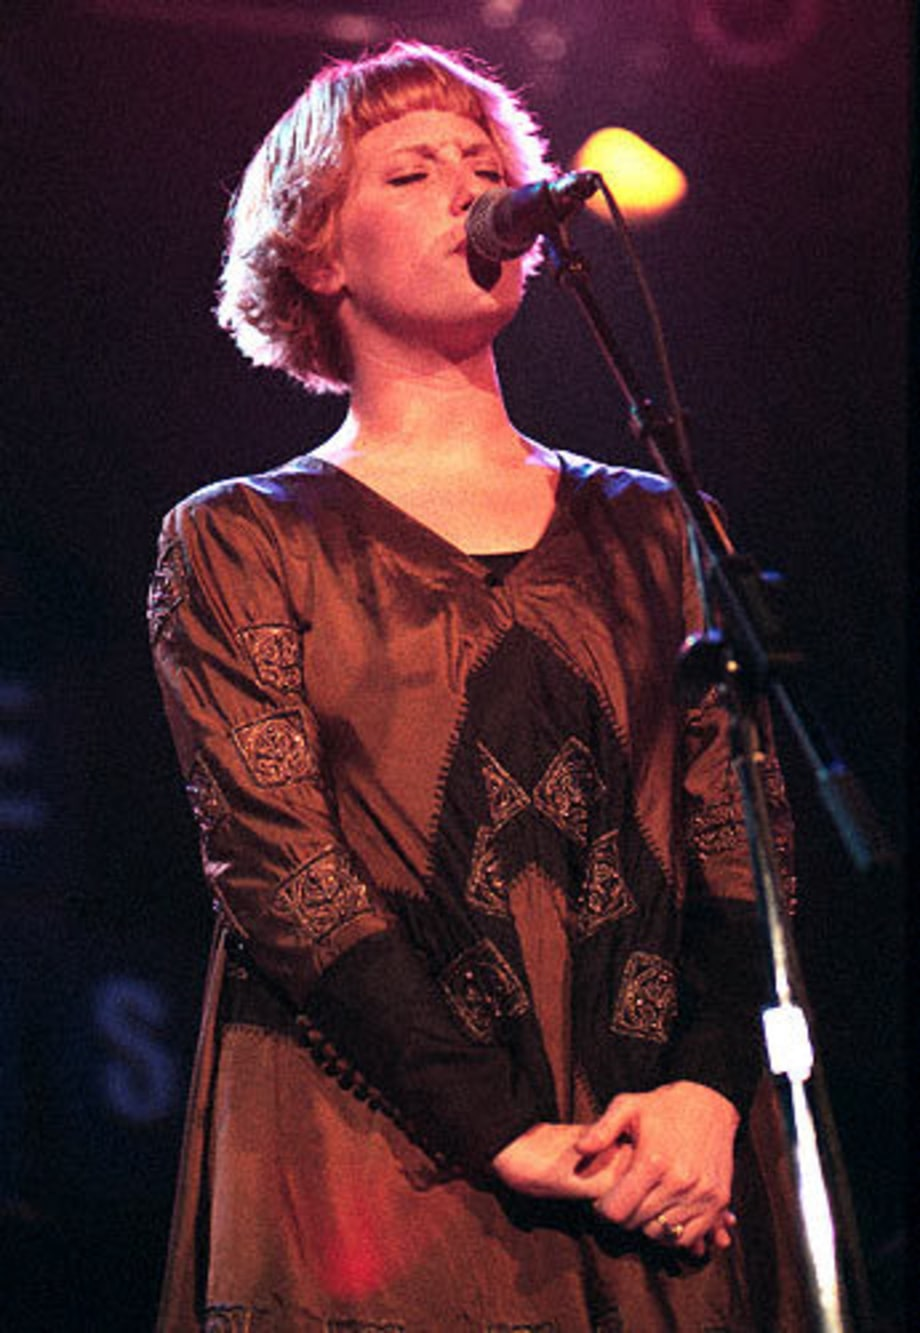 Sixpence None the Richer Photos